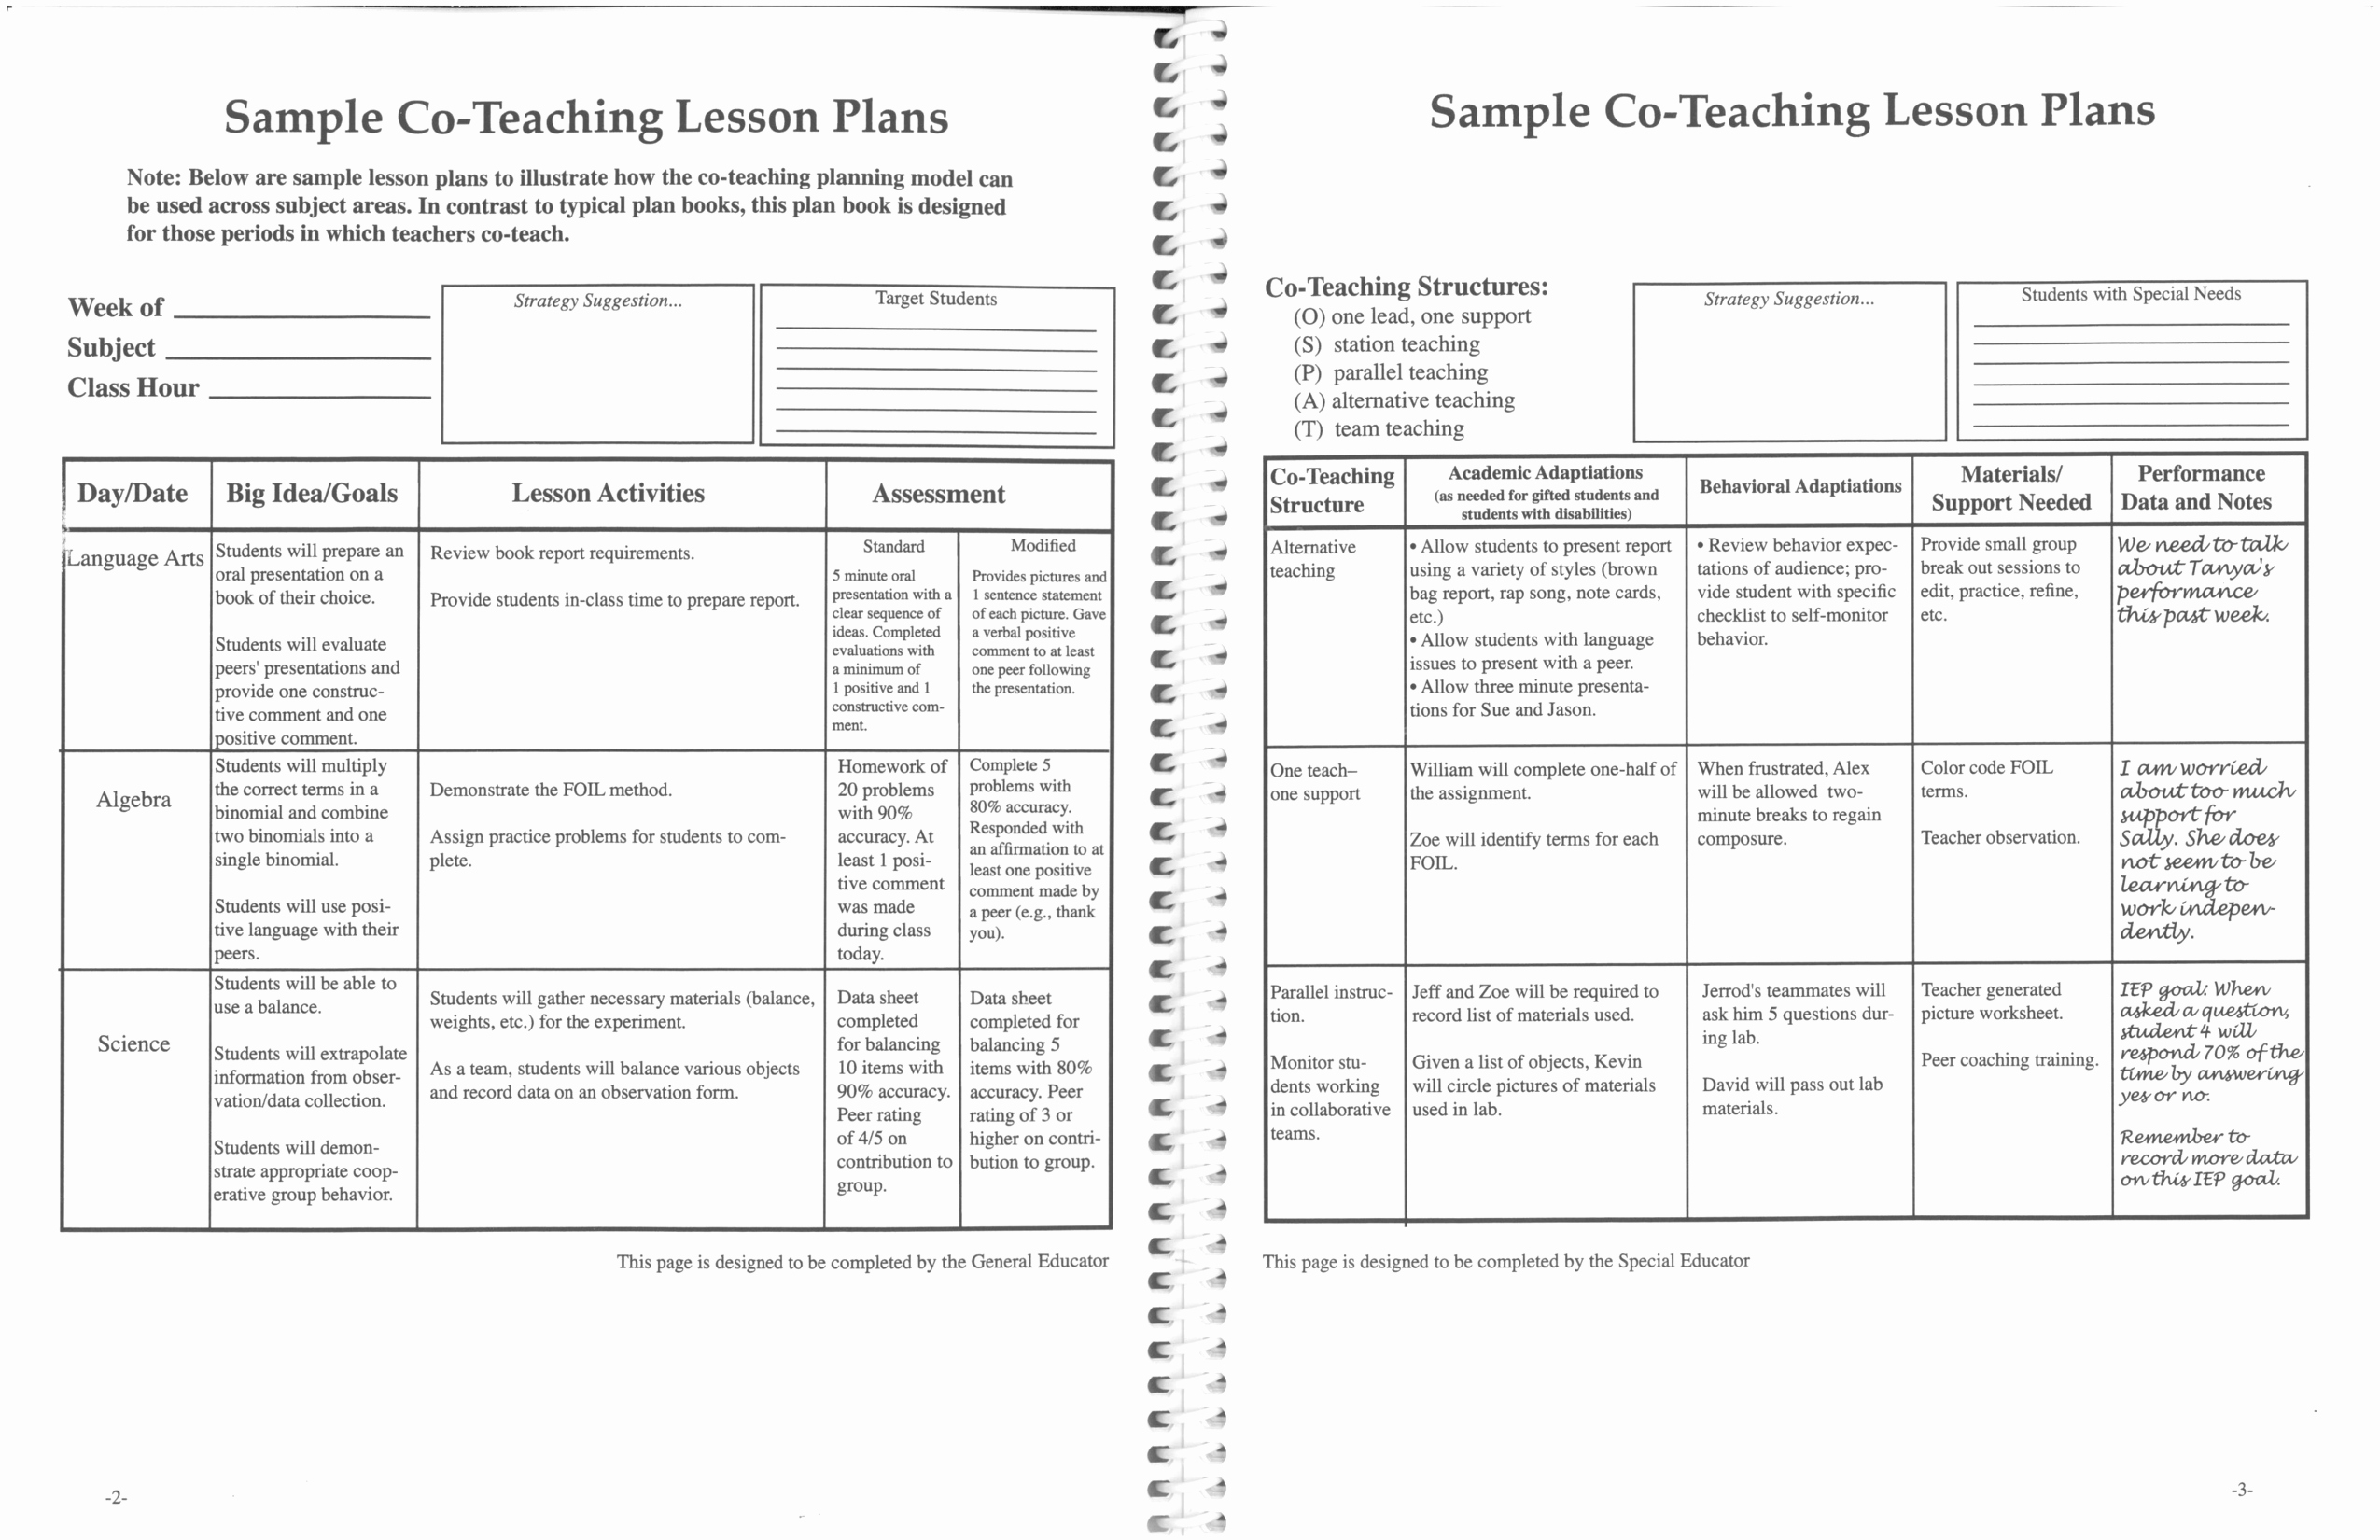 Elementary School Lesson Plans Template Awesome Printable Co Teaching Lesson Plans 2 with Teaching Lesson